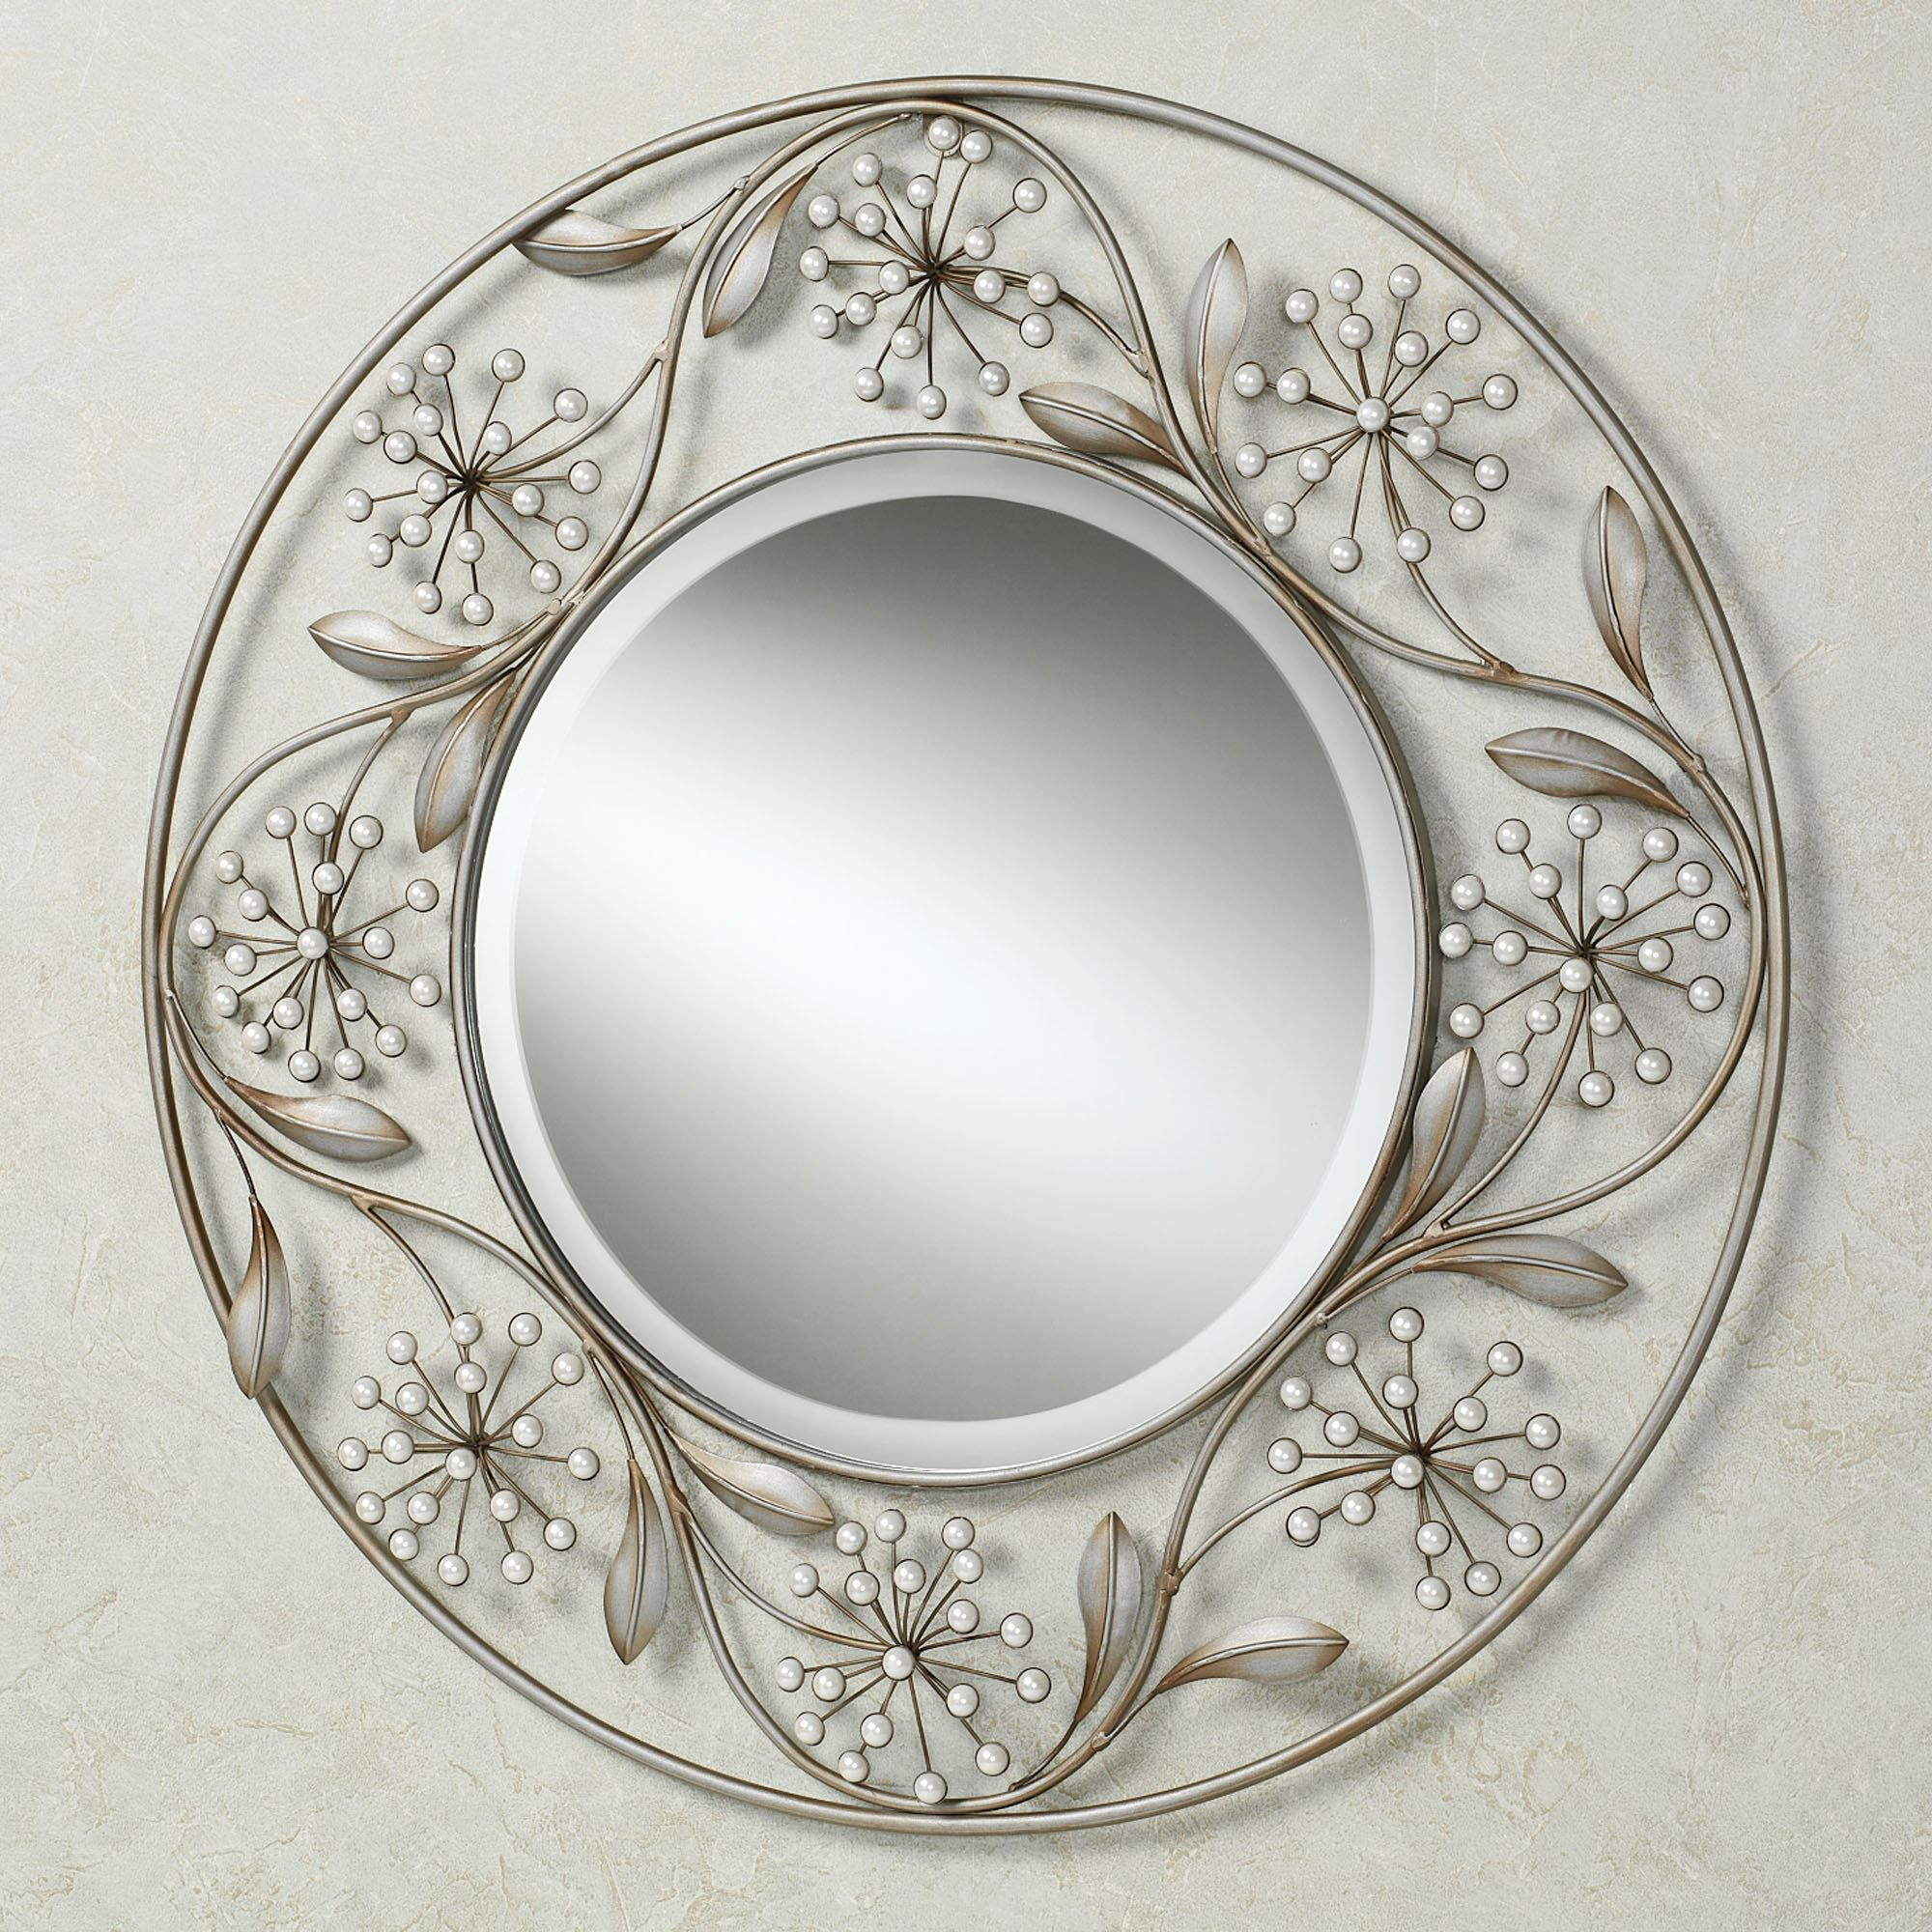 Metal Wall Mirrors Throughout Best And Newest Pearlette Round Metal Wall Mirror (View 8 of 20)